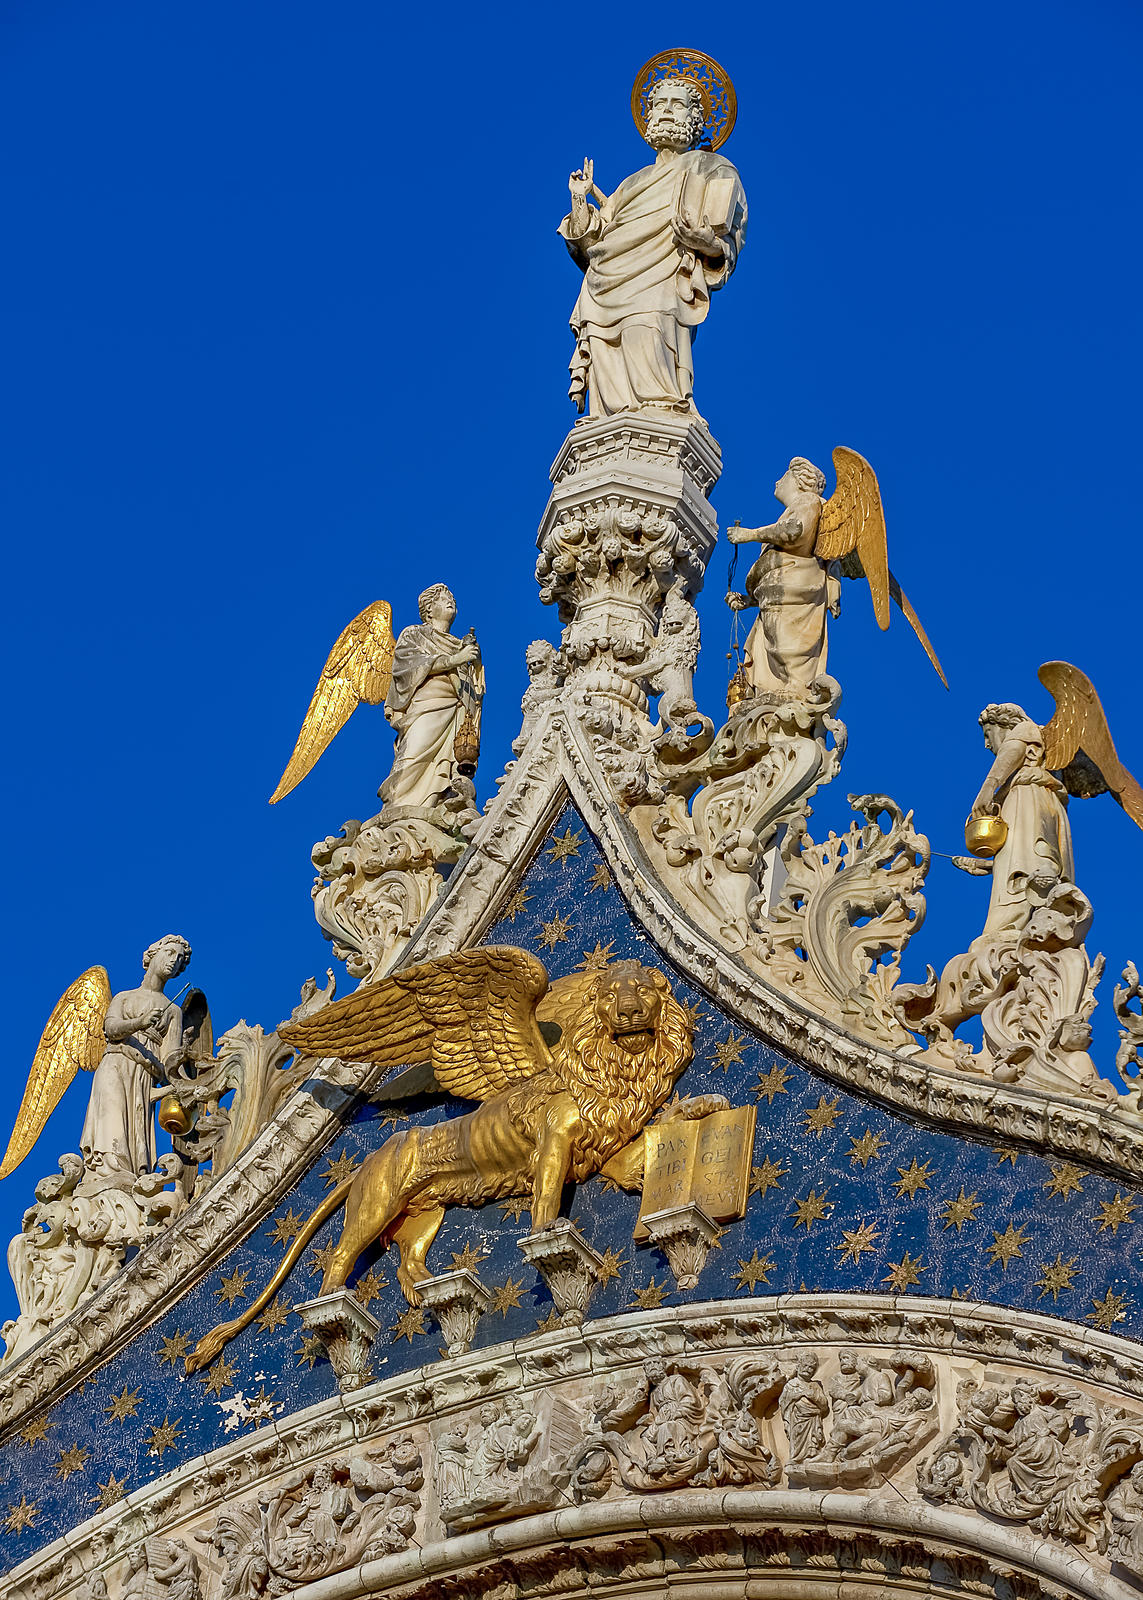 St Mark & Angels Carved Statues on top of the Basilica di San Marco, Venice